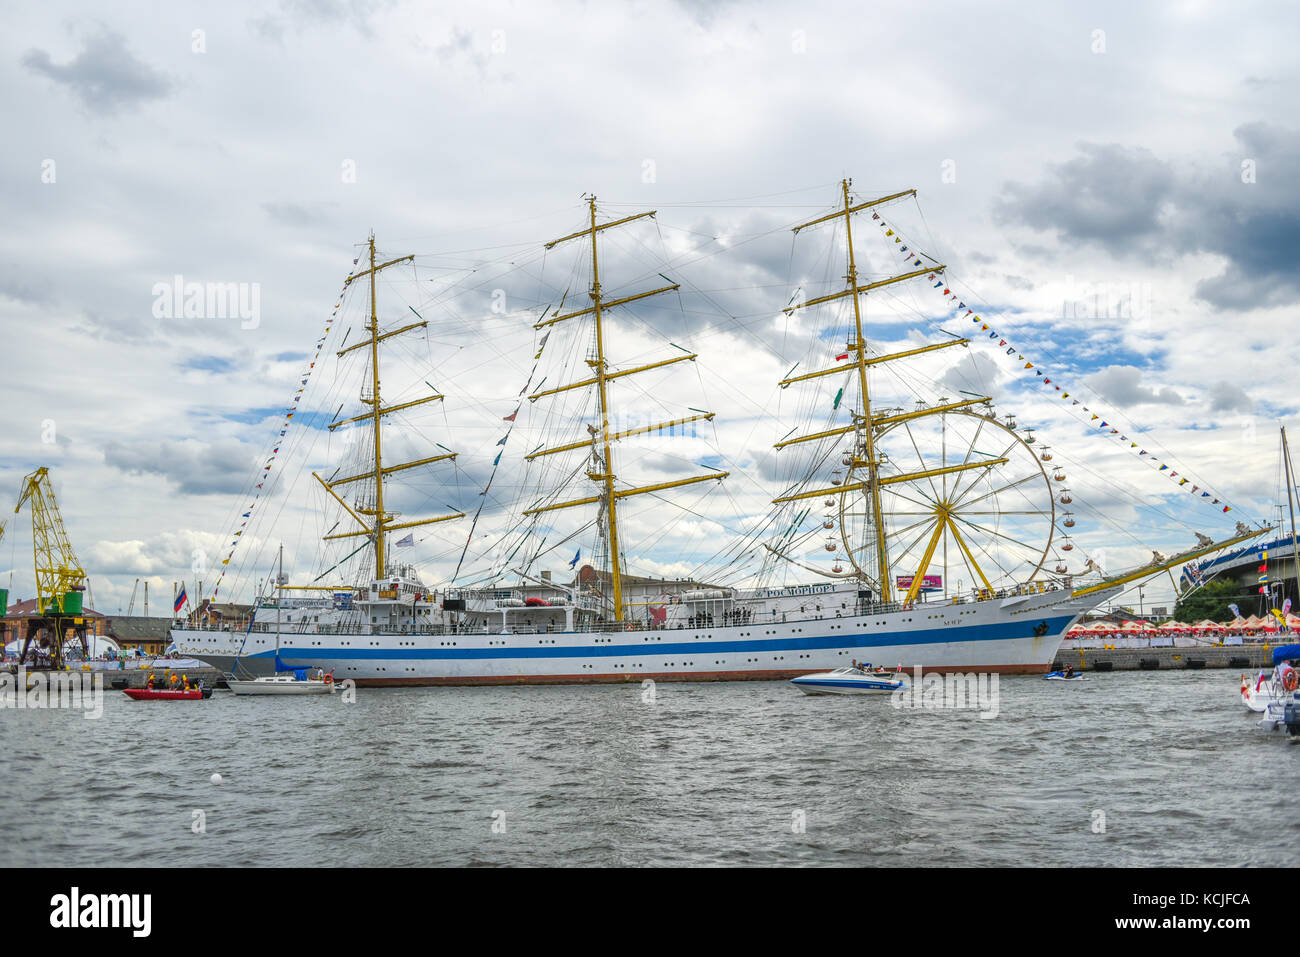 Szczecin, Poland, 5 august 2017: Ship at the quay during the finale of The Tall Ships Races 2017 in Szczecin. - Stock Image